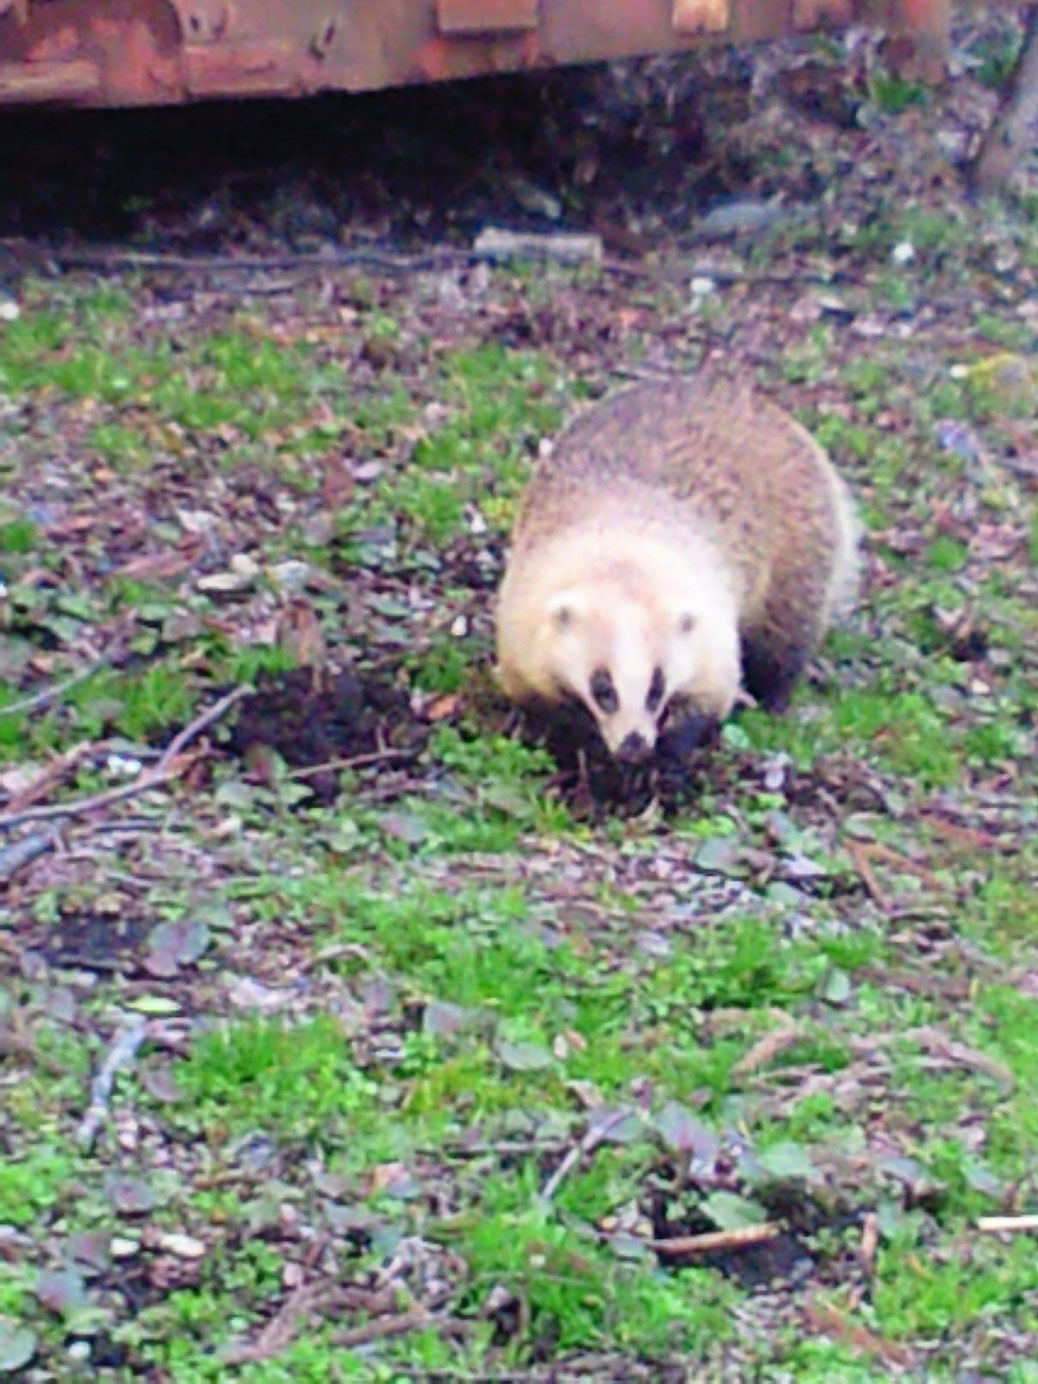 This is a badger. It looks cute but it seems ferocious .